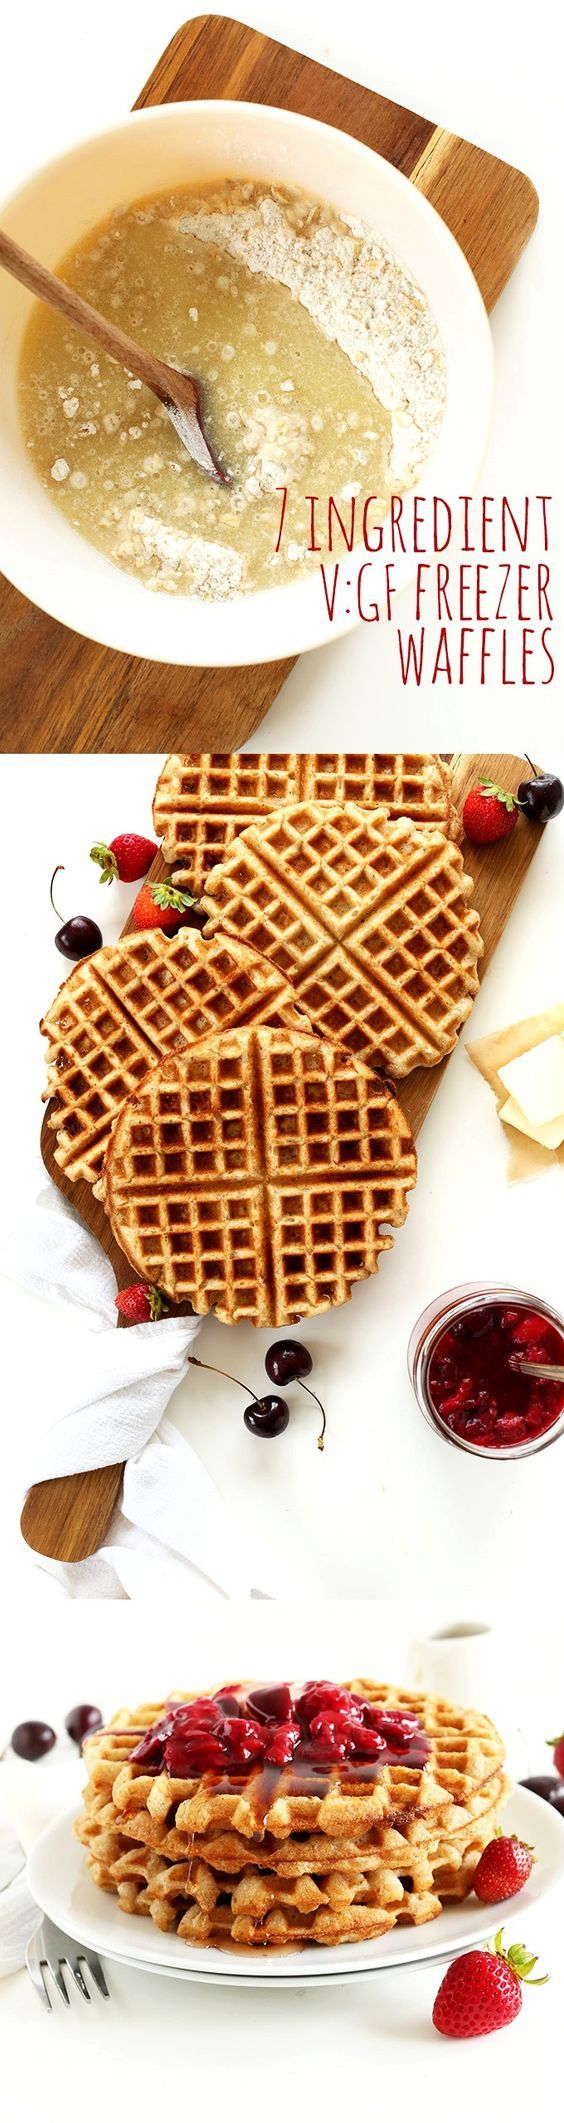 7 Ingredient V GF Waffles that are wholesome  hearty  naturally sweetened and highly customizable by season and preference.7 Ingredient V GF Waffles that are wholesome  hearty  naturally sweetened and highly customizable by season and preference.